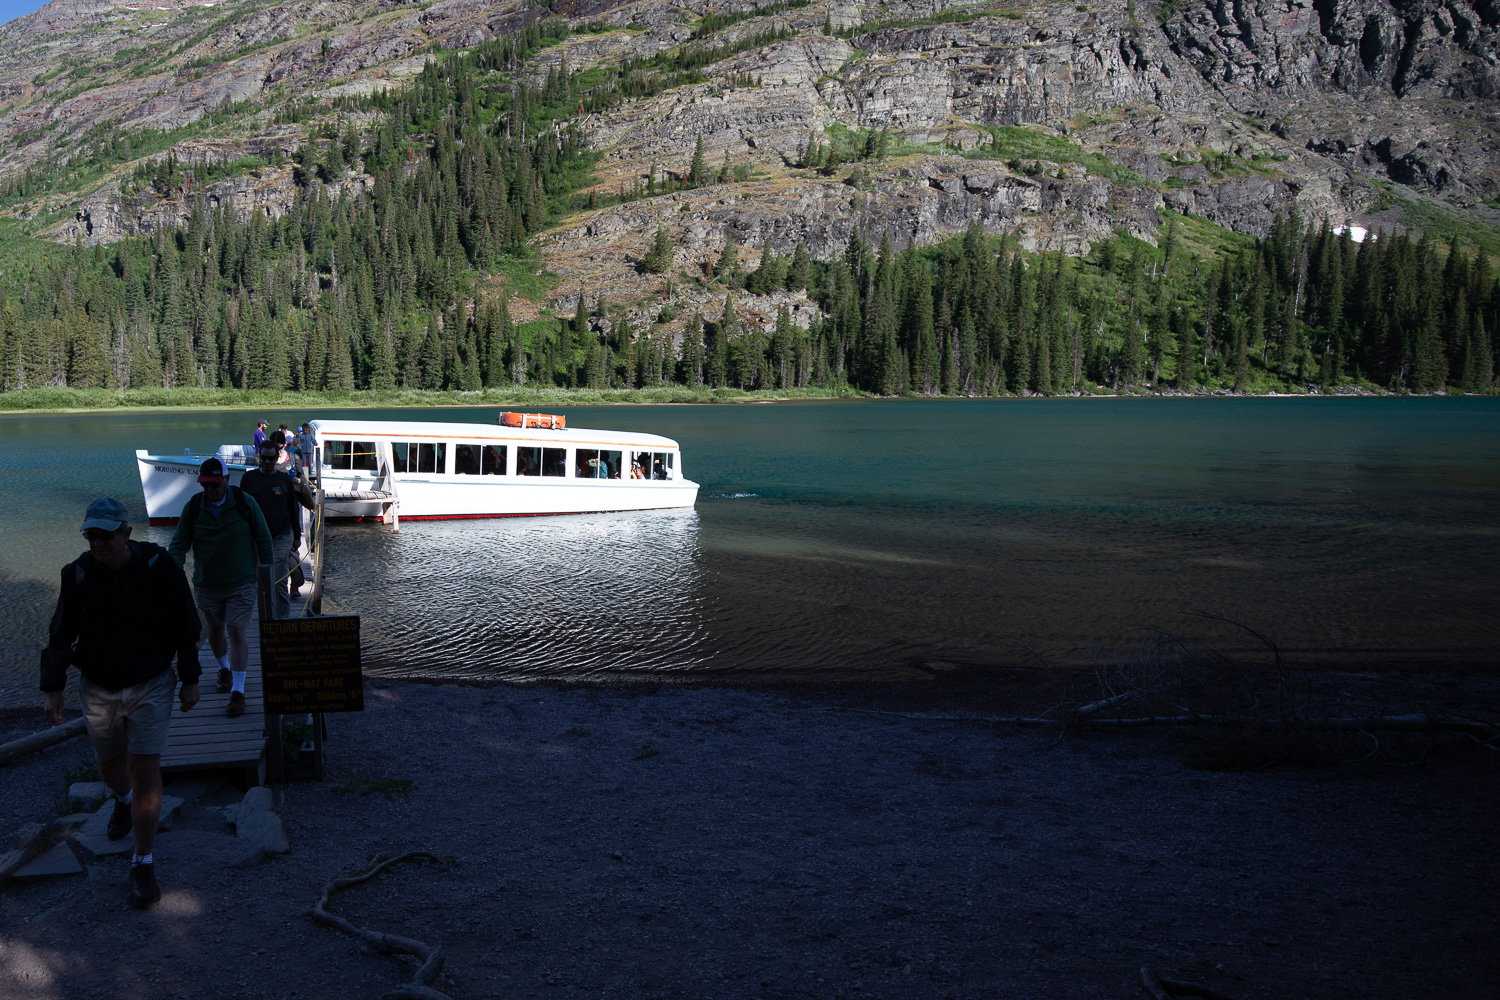 Passengers departing the Morning Eagle on their way to traverse the Grinnell Glacier trail.